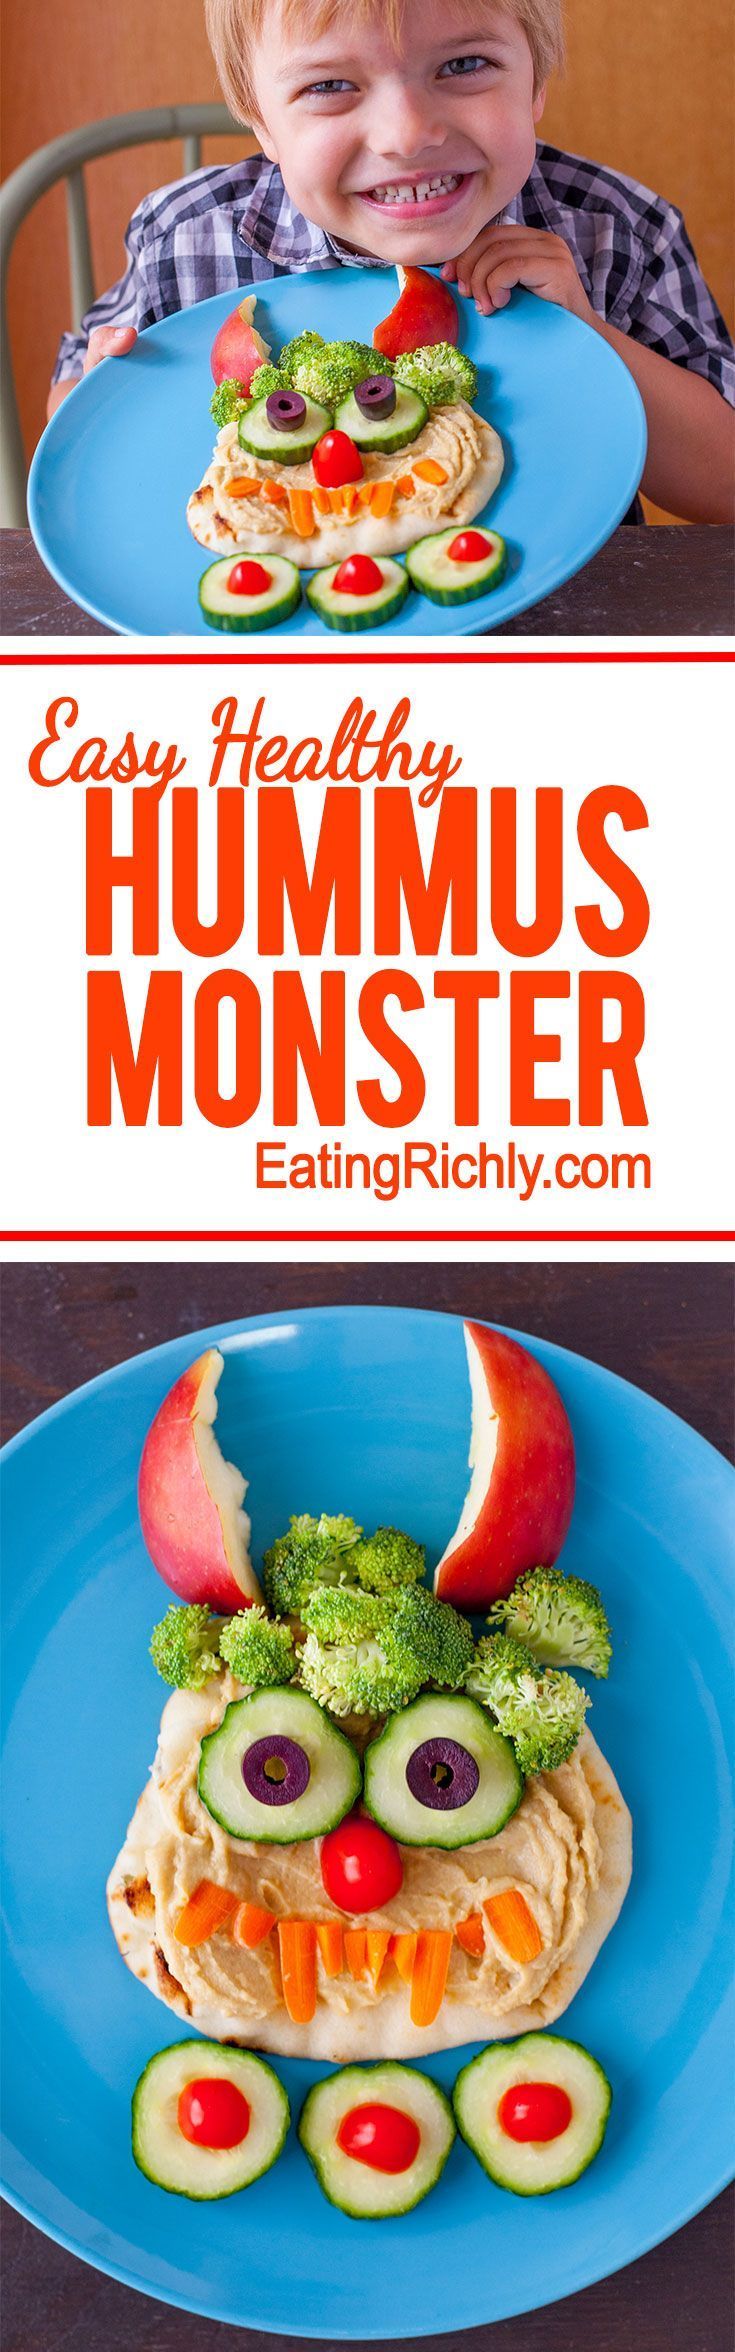 This friendly hummus monster is adorable any time of year, but makes the perfect healthy Halloween lunch for kids. And it's so easy to make!